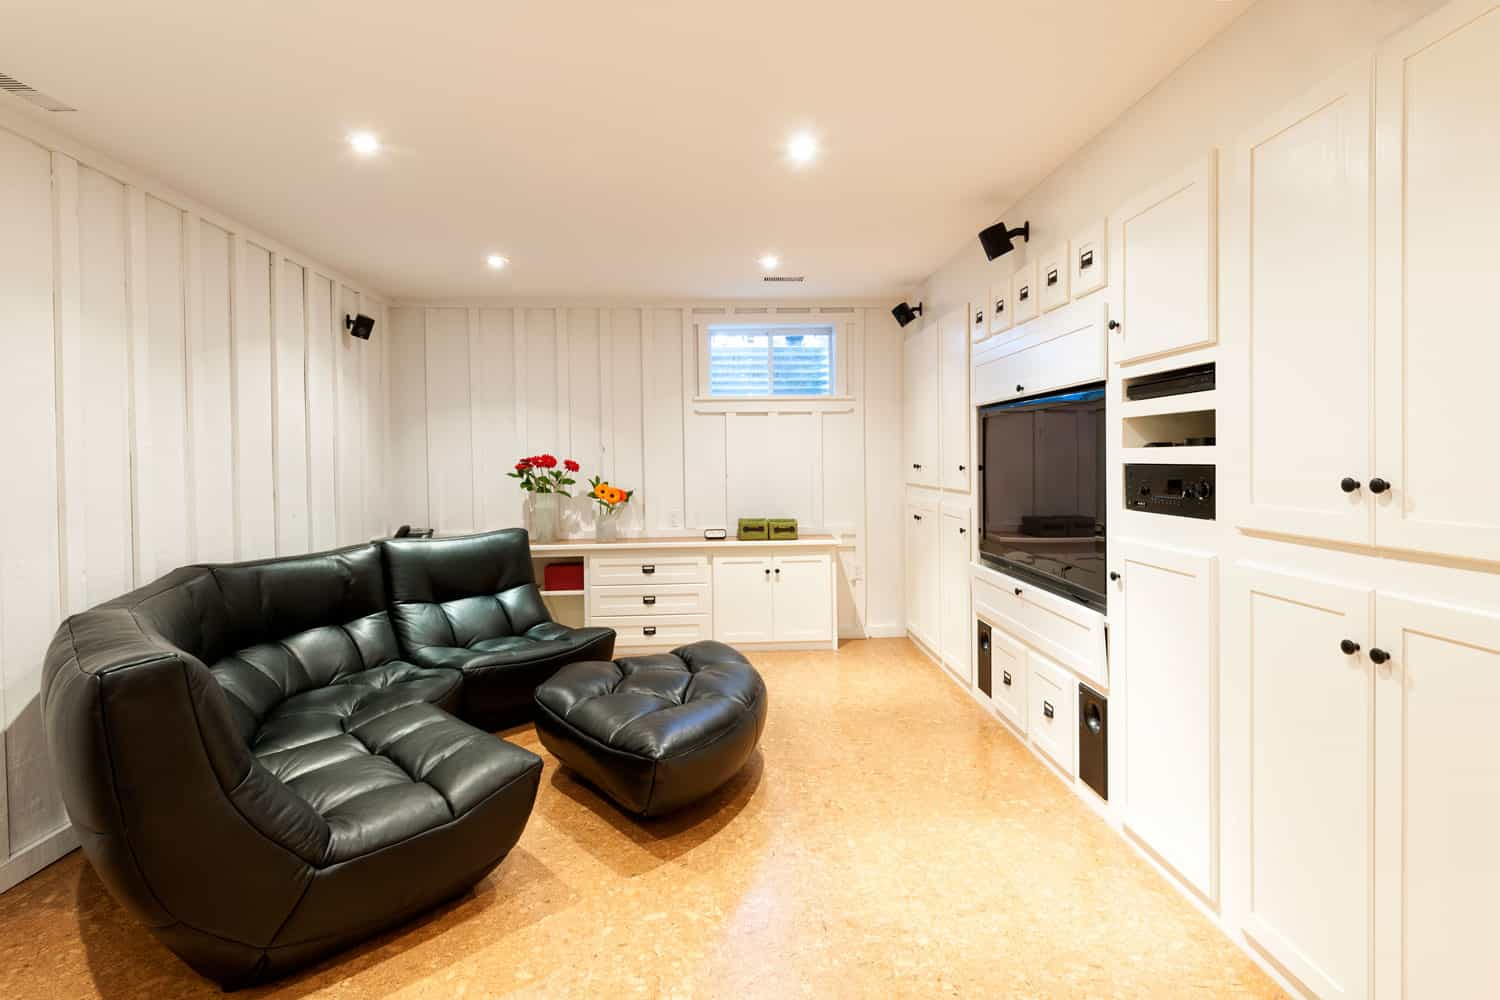 A black colored curved sectional sofa inside a white colored flat paneled basement